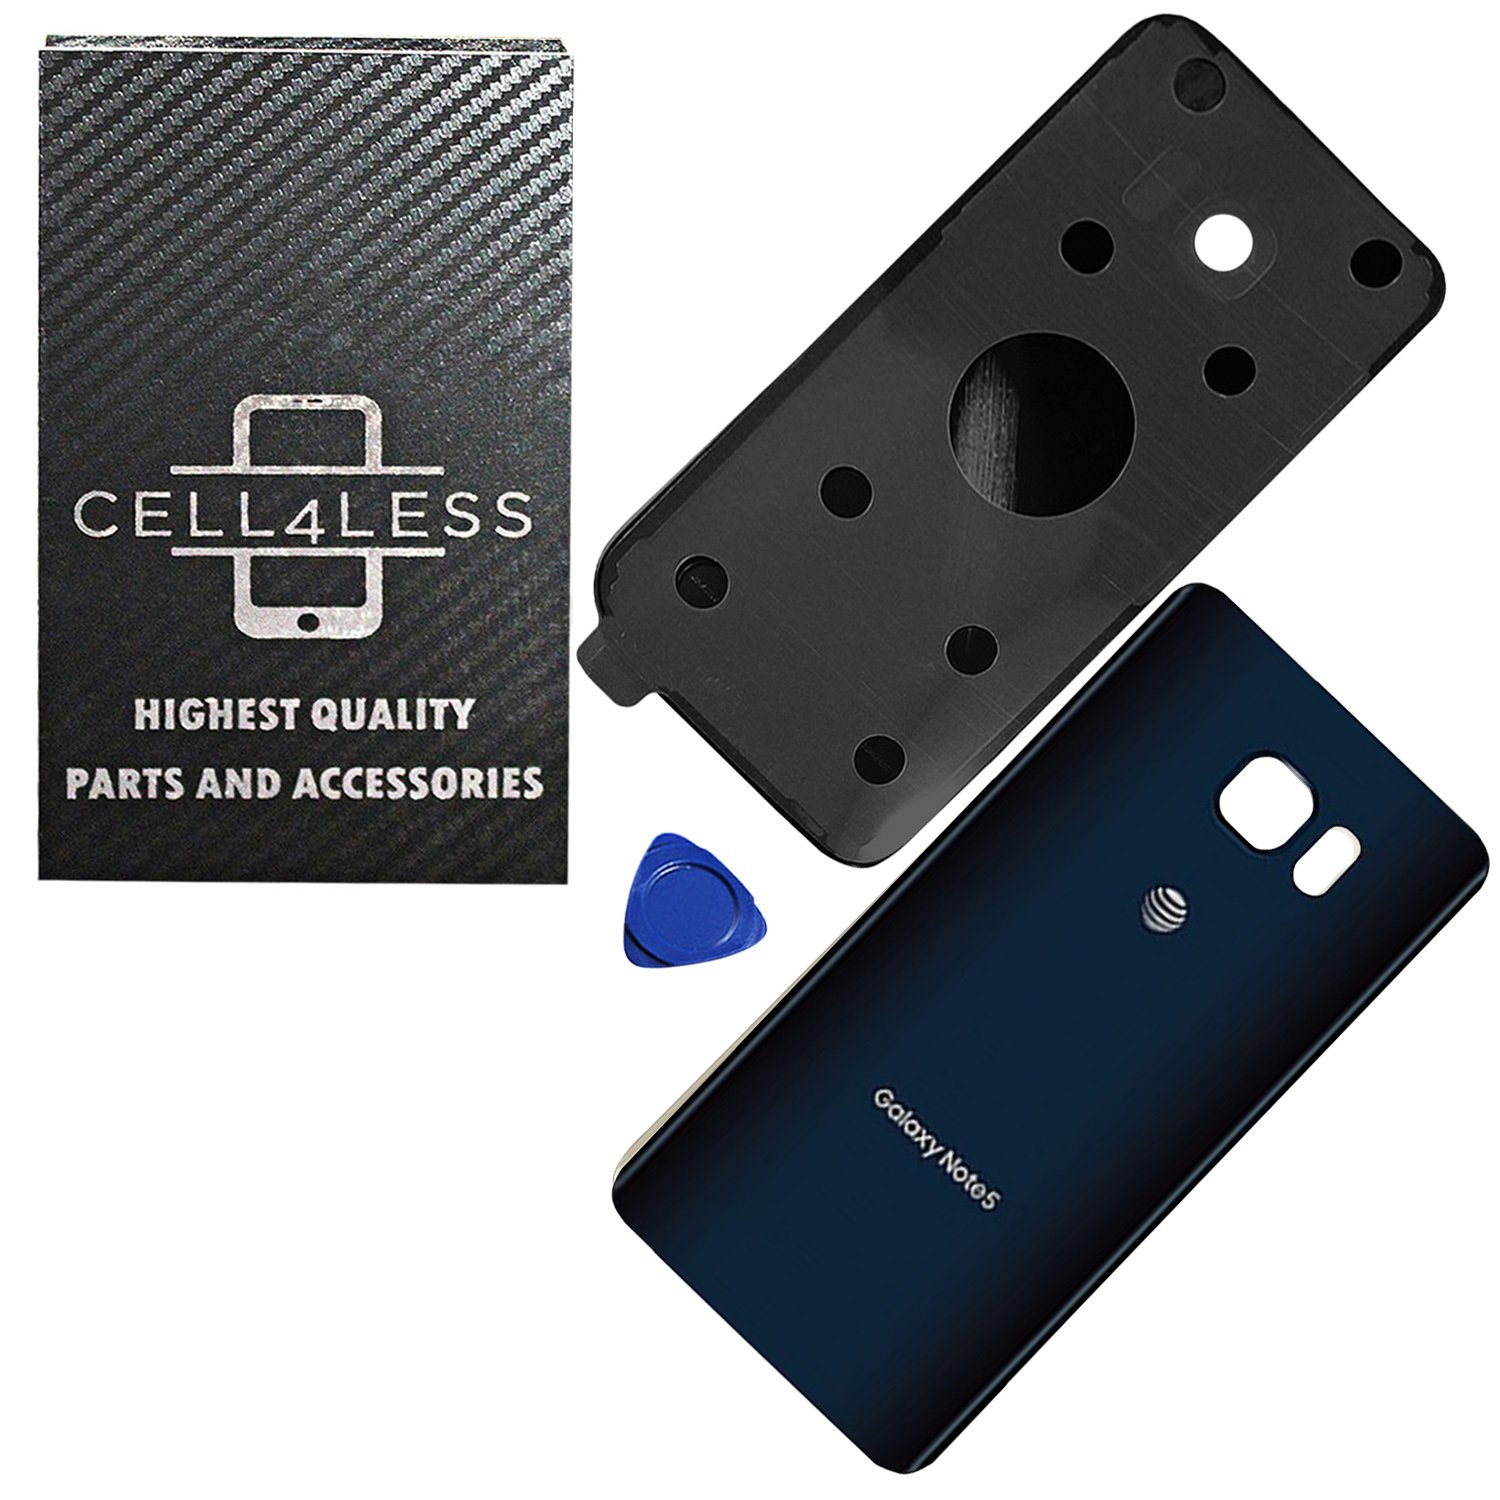 new style 2357e a5ad5 CELL4LESS Samsung Galaxy Note 5 Replacement Rear Back Glass Back Cover  w/Removal Tool & Pre-Installed Adhesive - Fits N920 Models at&T Carrier  Logo - ...